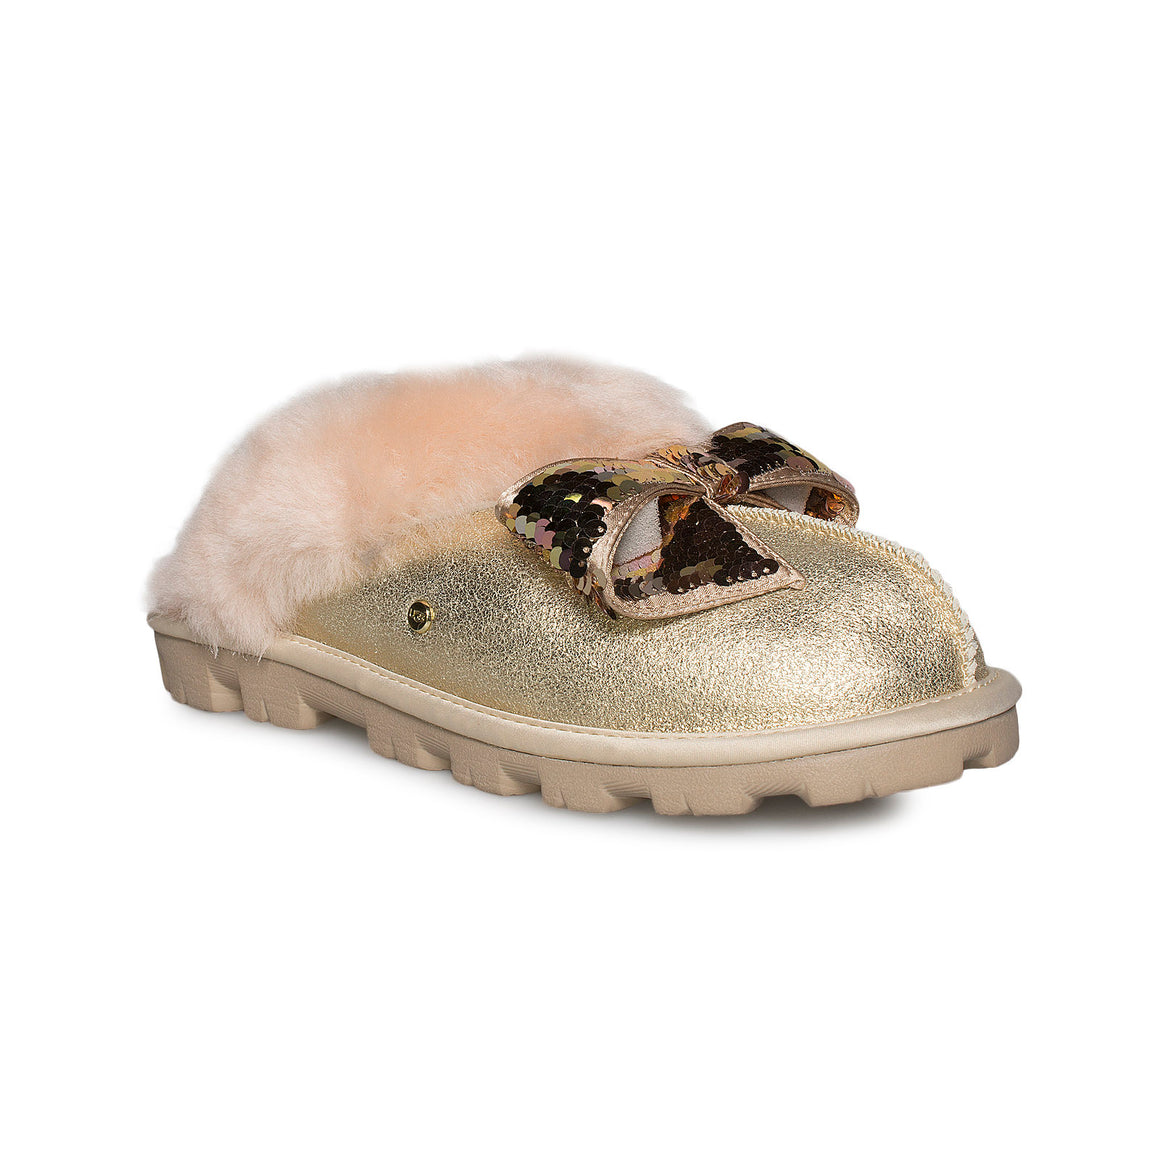 UGG Coquette Sequin Bow Gold Slippers - Women's